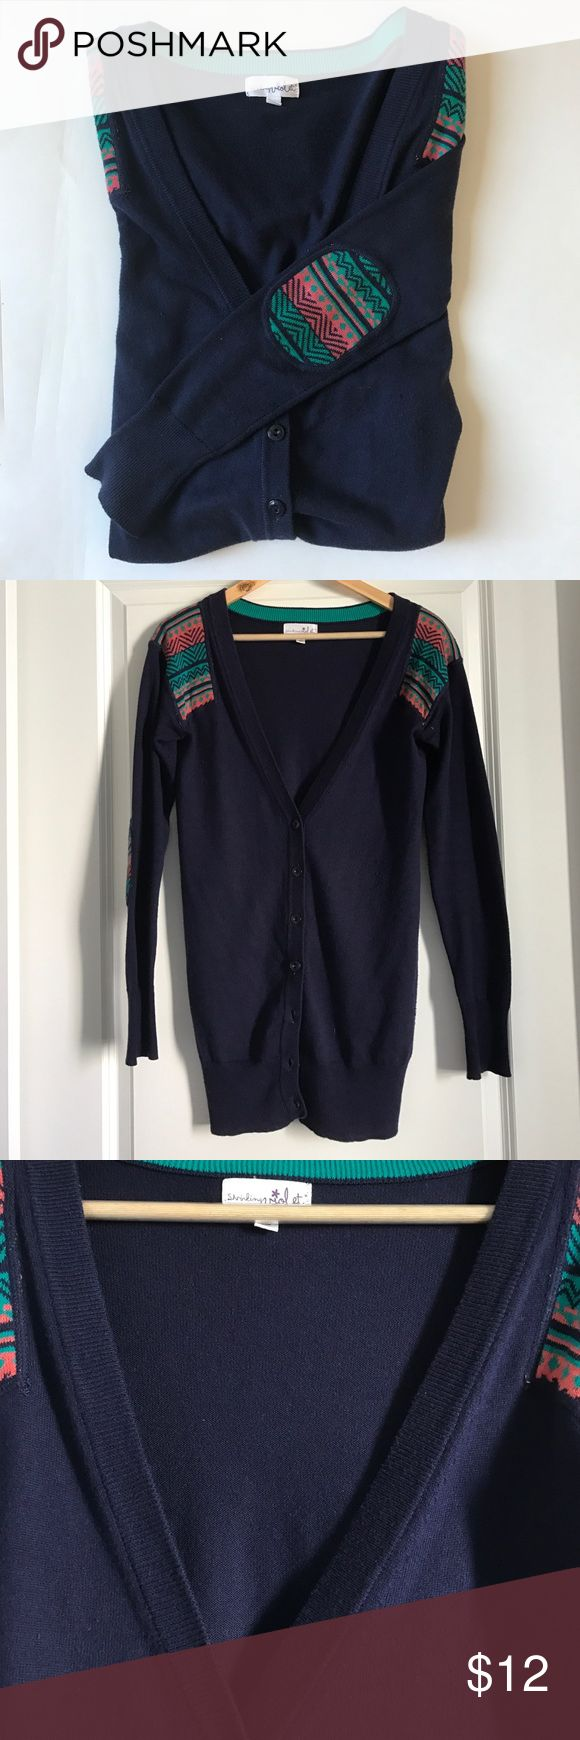 Long navy cardigan Tribal pattern long soft cardigan. Used in a good condition. Shrinking Violet Sweaters Cardigans